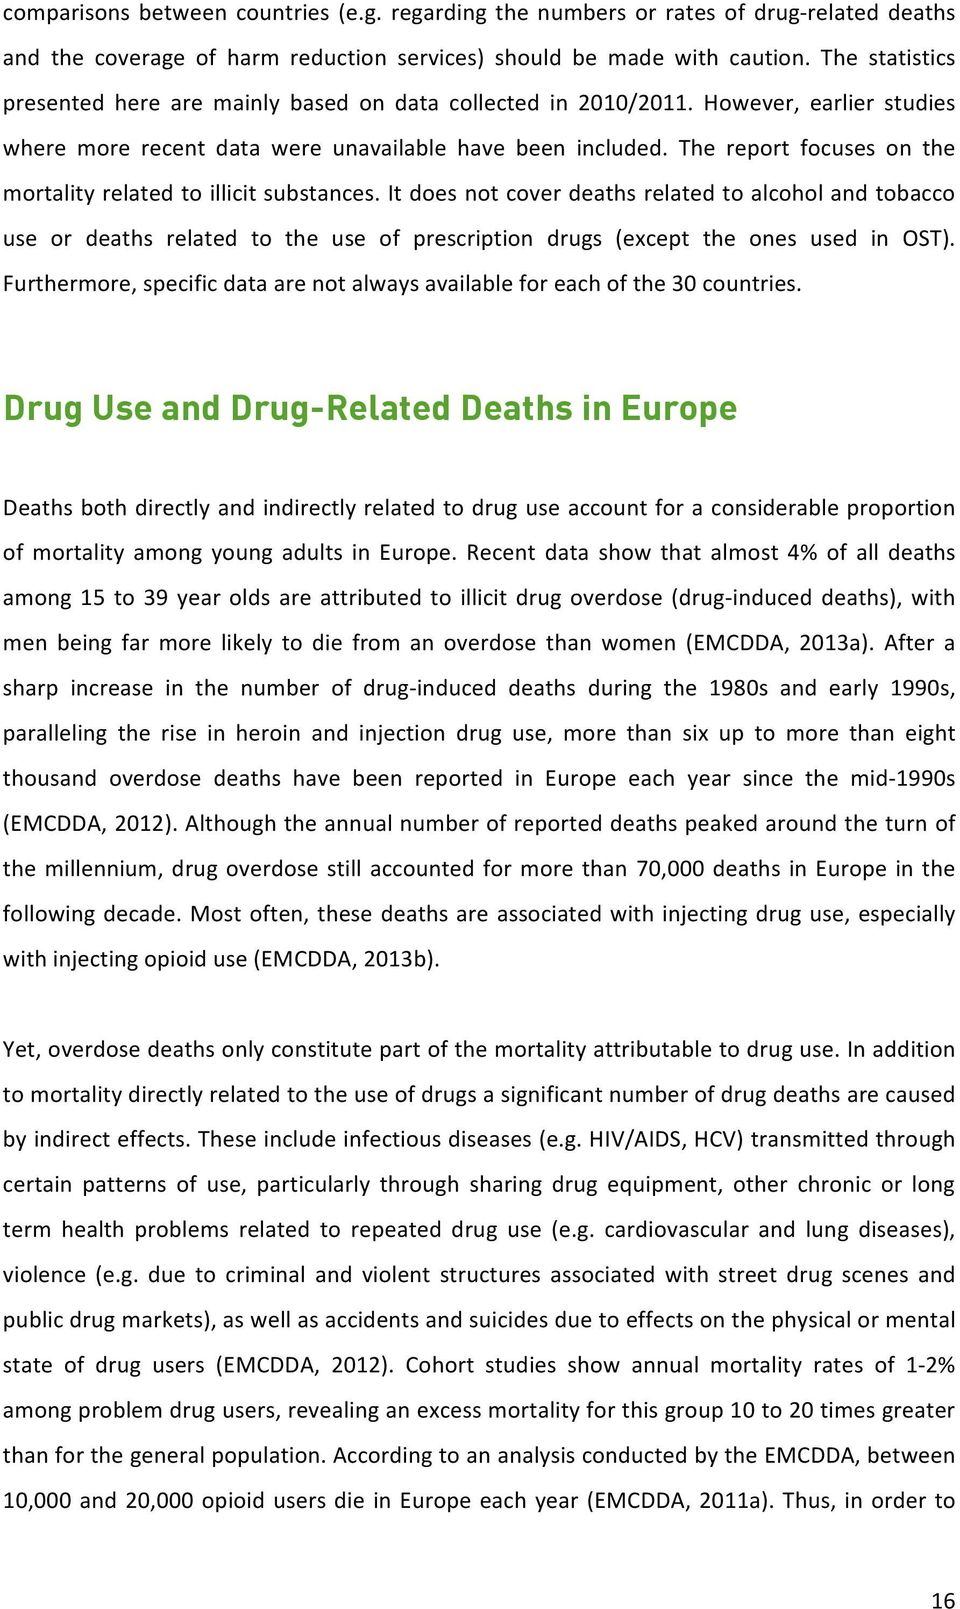 The report focuses on the mortality related to illicit substances.